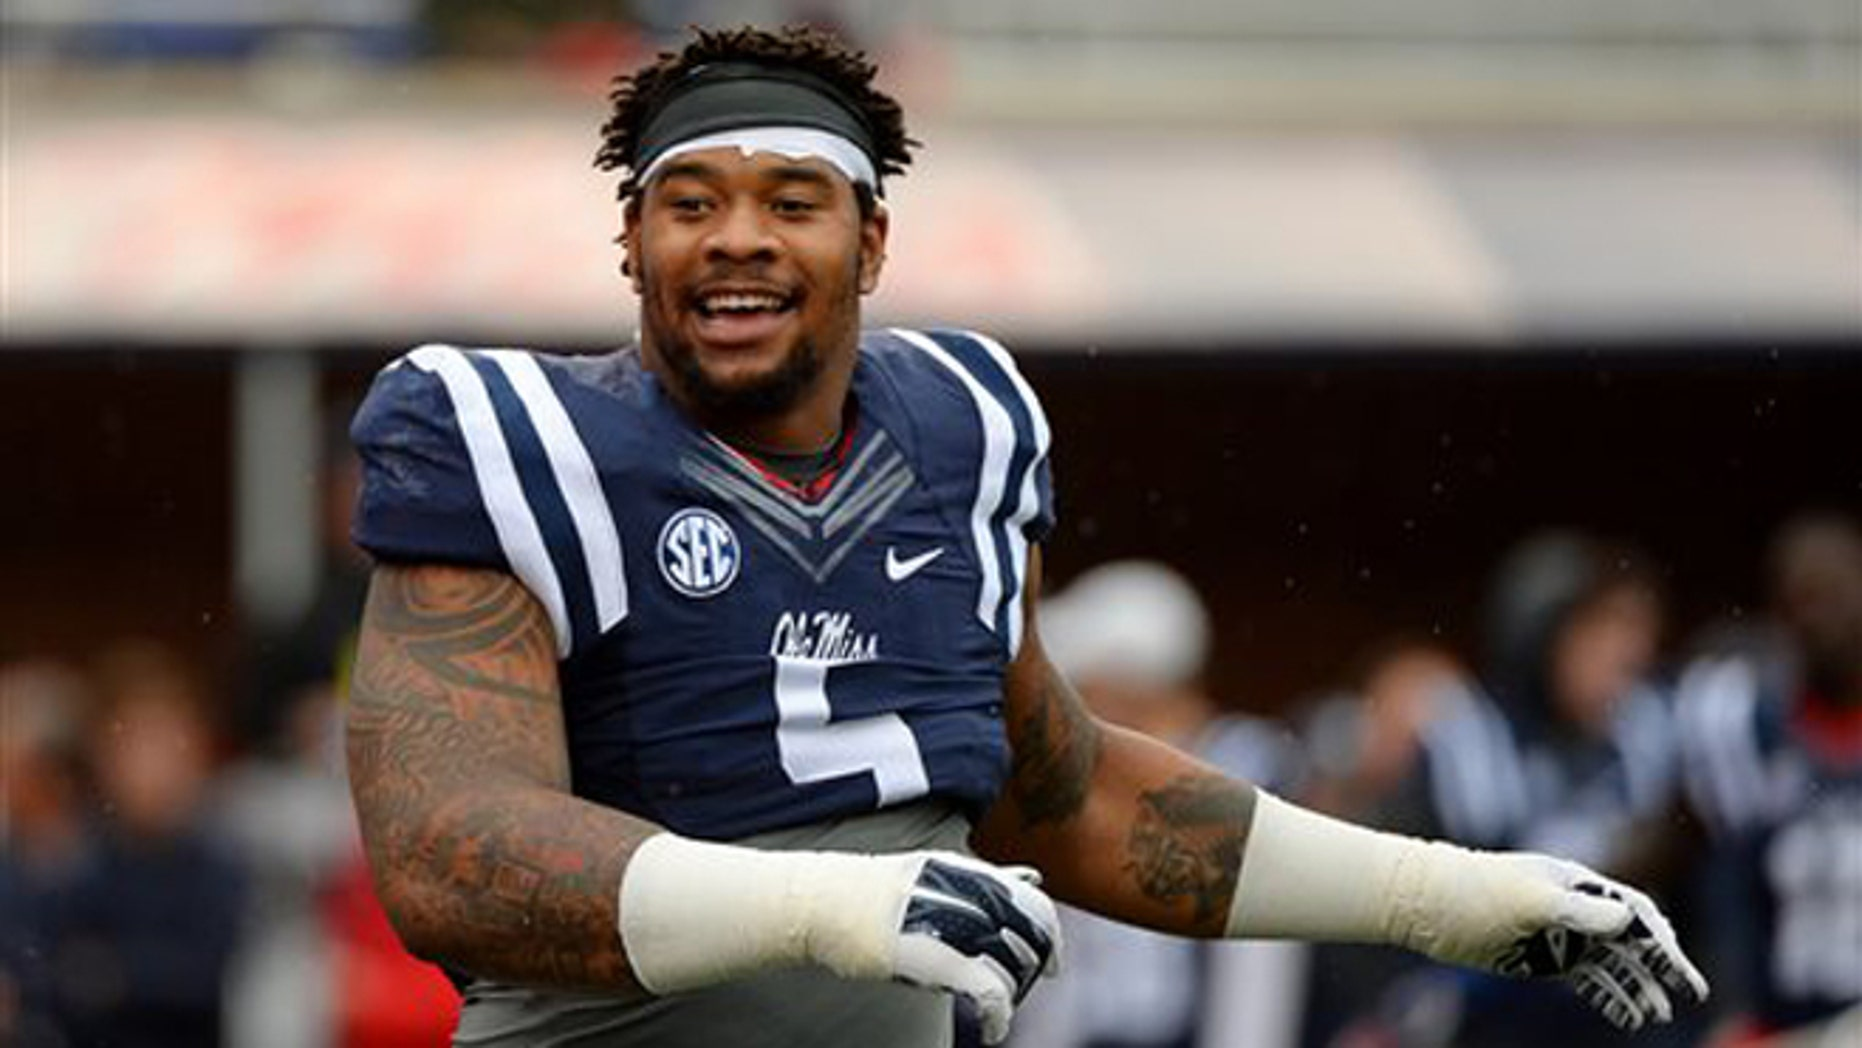 Nov. 7, 2015: Mississippi defensive tackle Robert Nkemdiche stretches before an NCAA college football game against Arkansas in Oxford, Miss. (AP Photo/Thomas Graning)